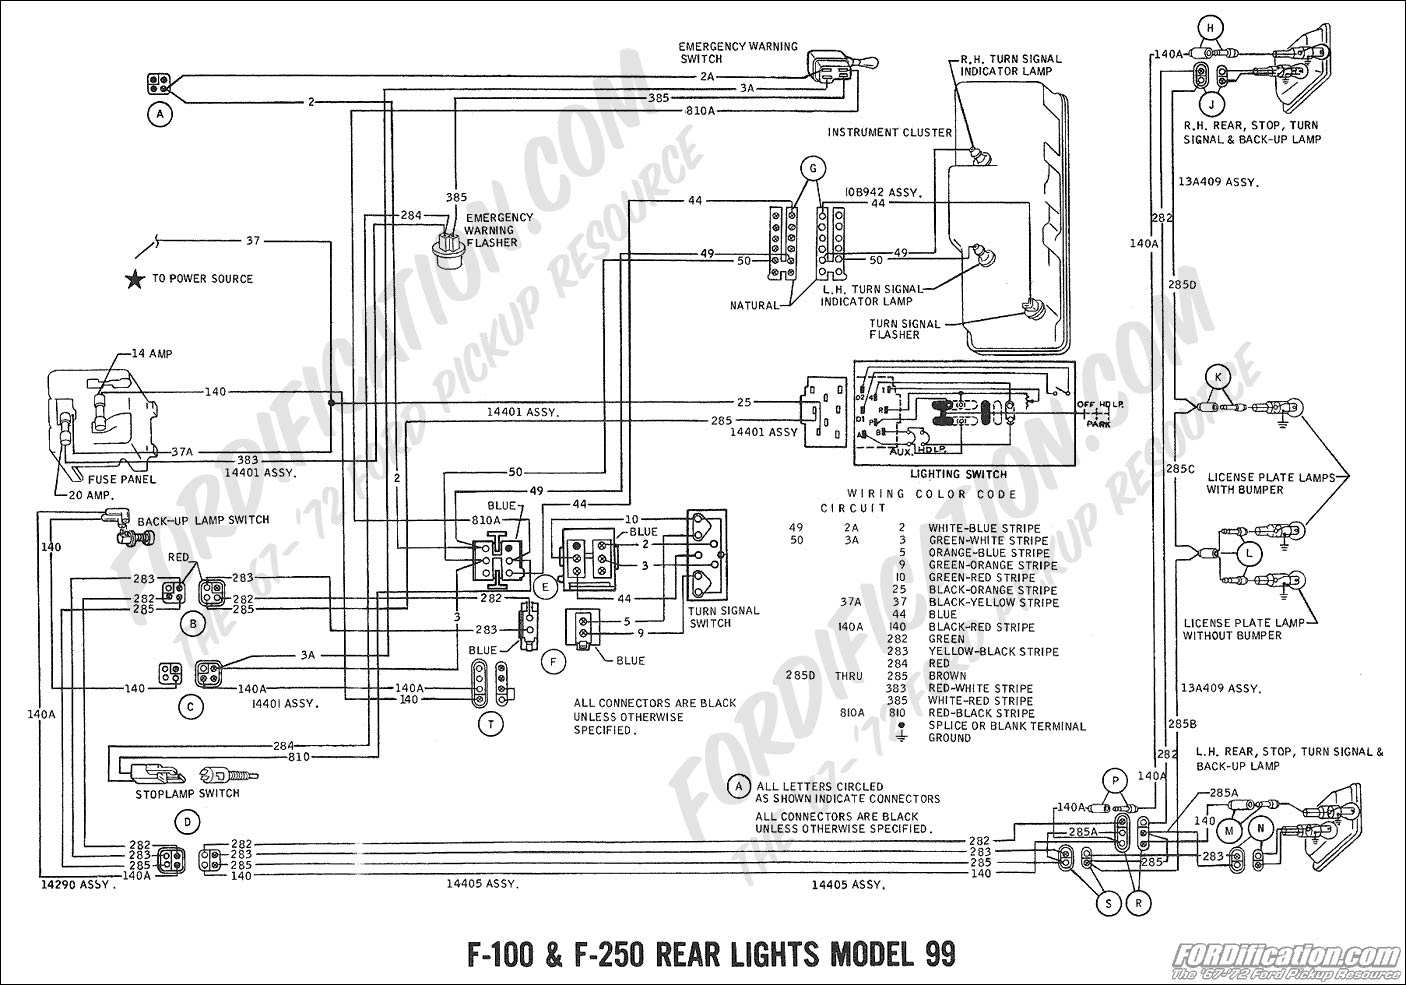 wiring diagram 2000 f350 rear lights  wiring  free engine